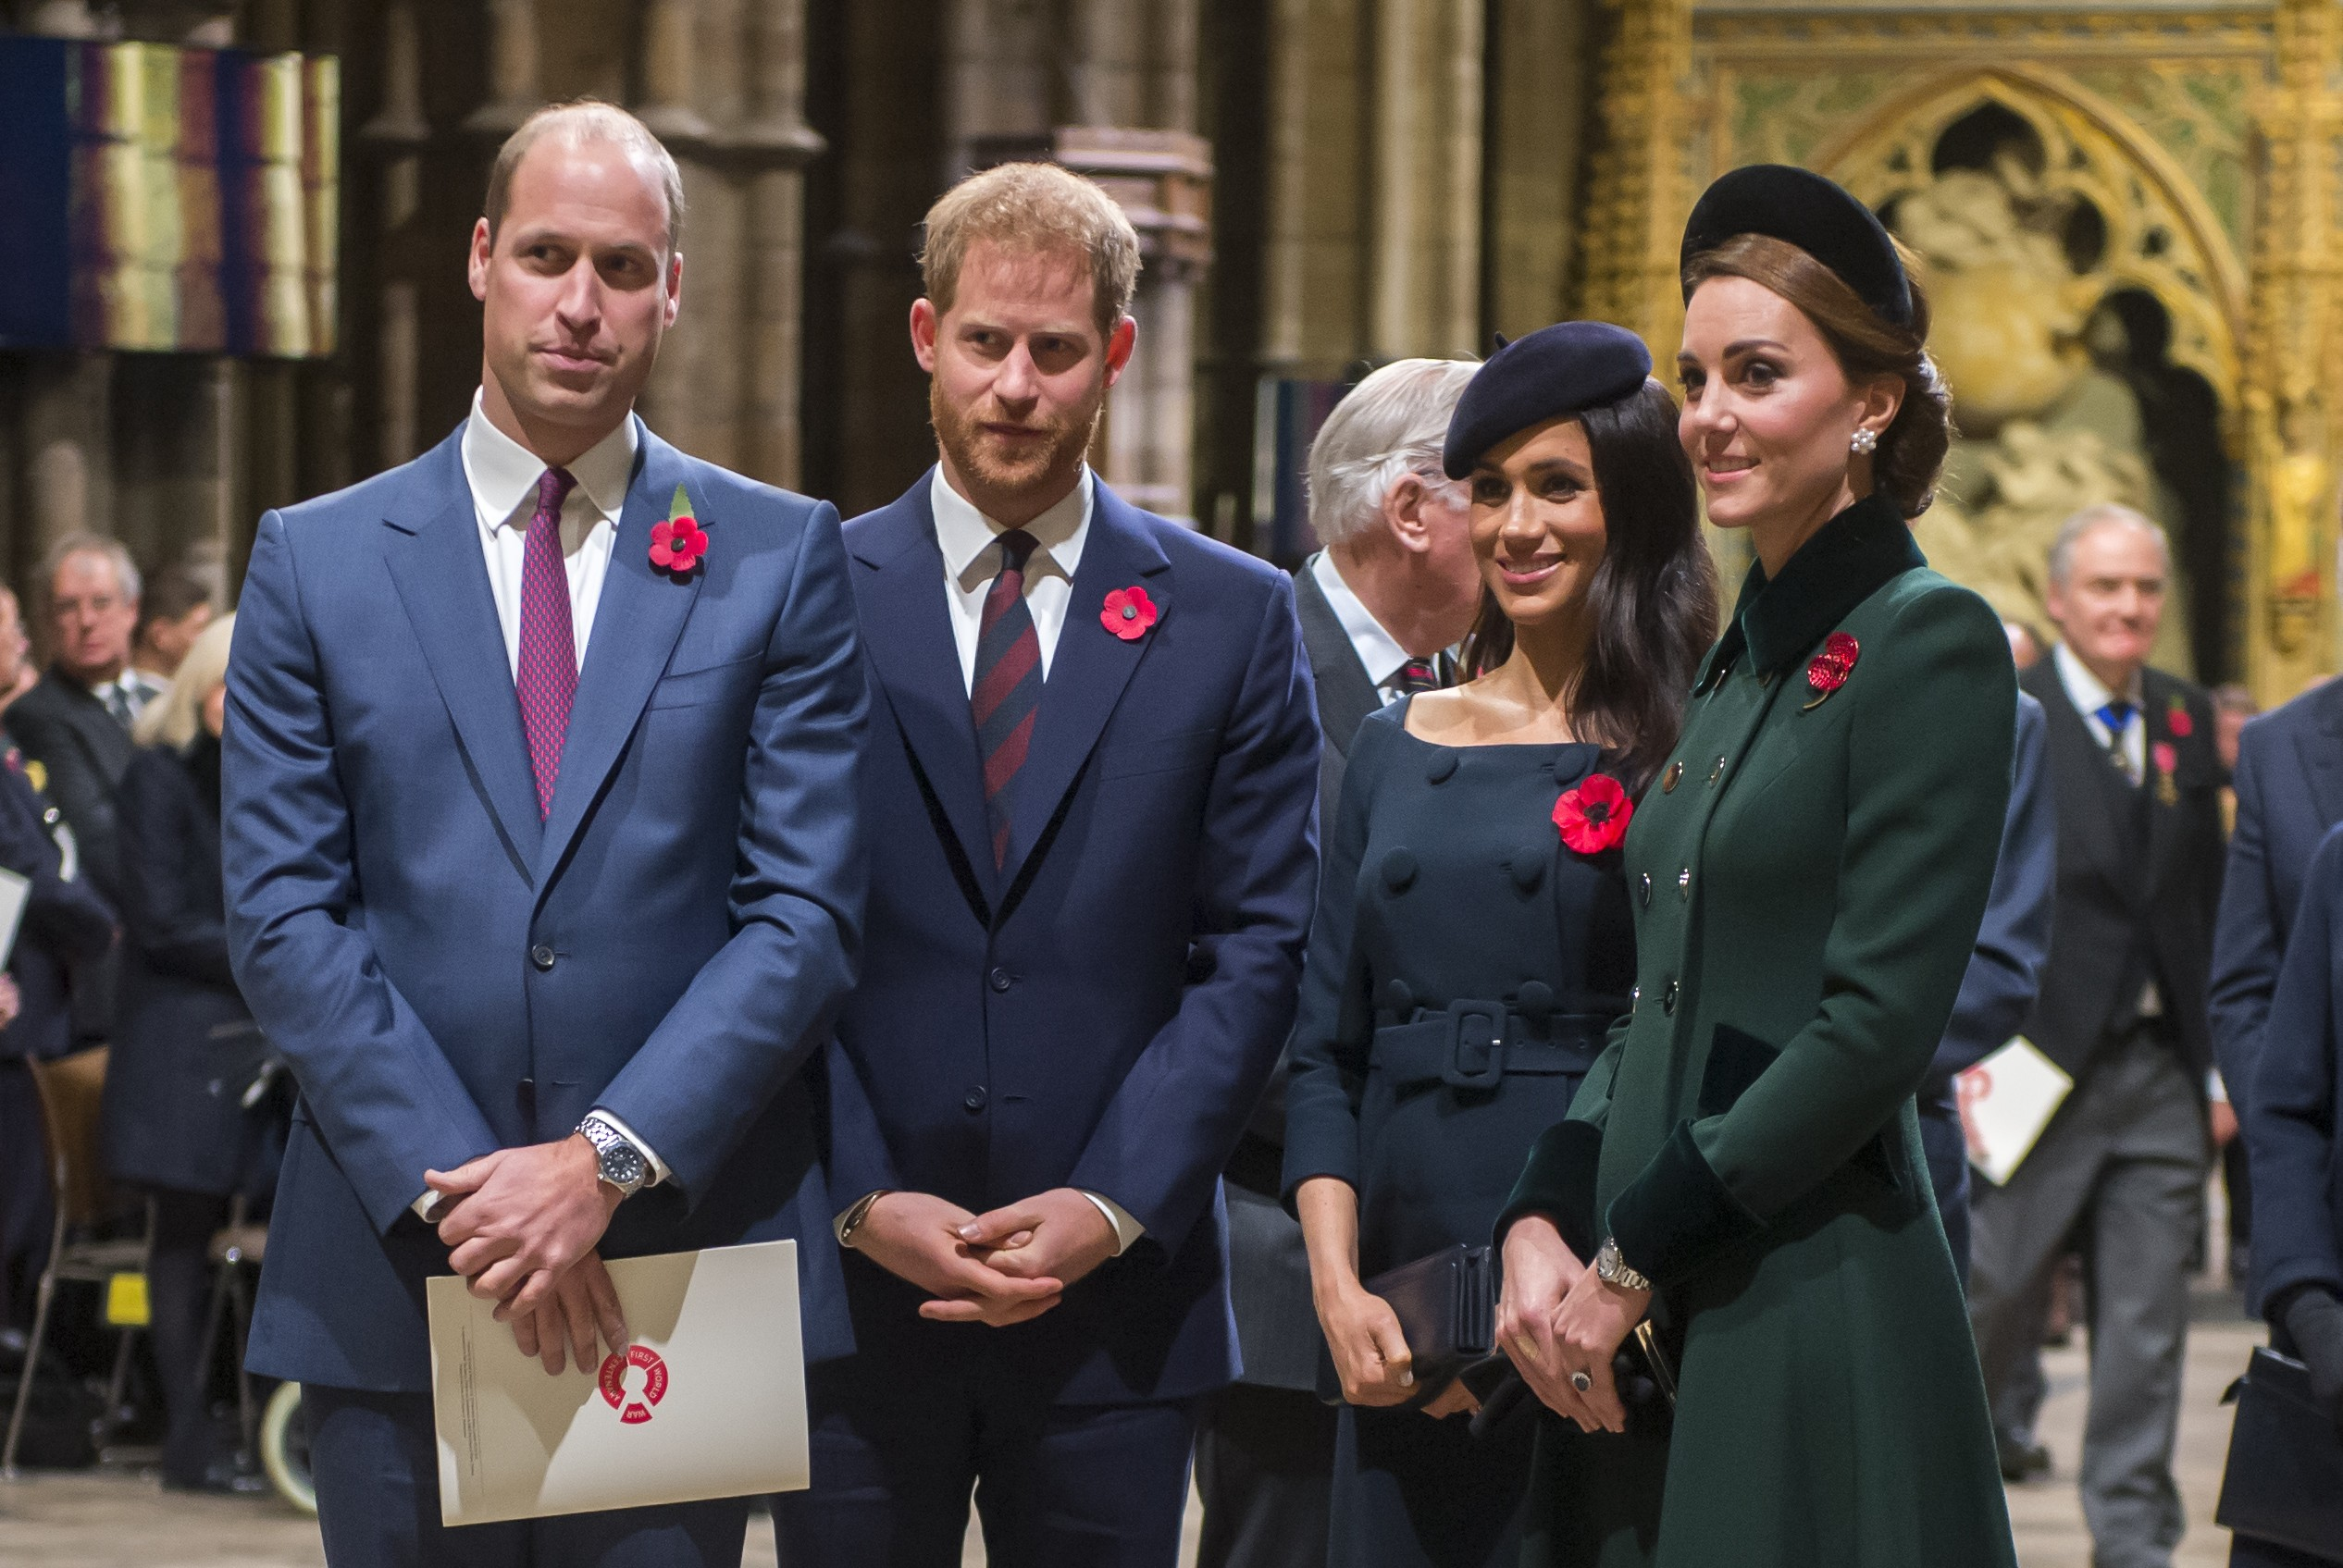 A atriz e duquesa Meghan Markle com o marido, Príncipe Harry, e o Príncipe William com a esposa, Kate Middleton (Foto: Getty Images)